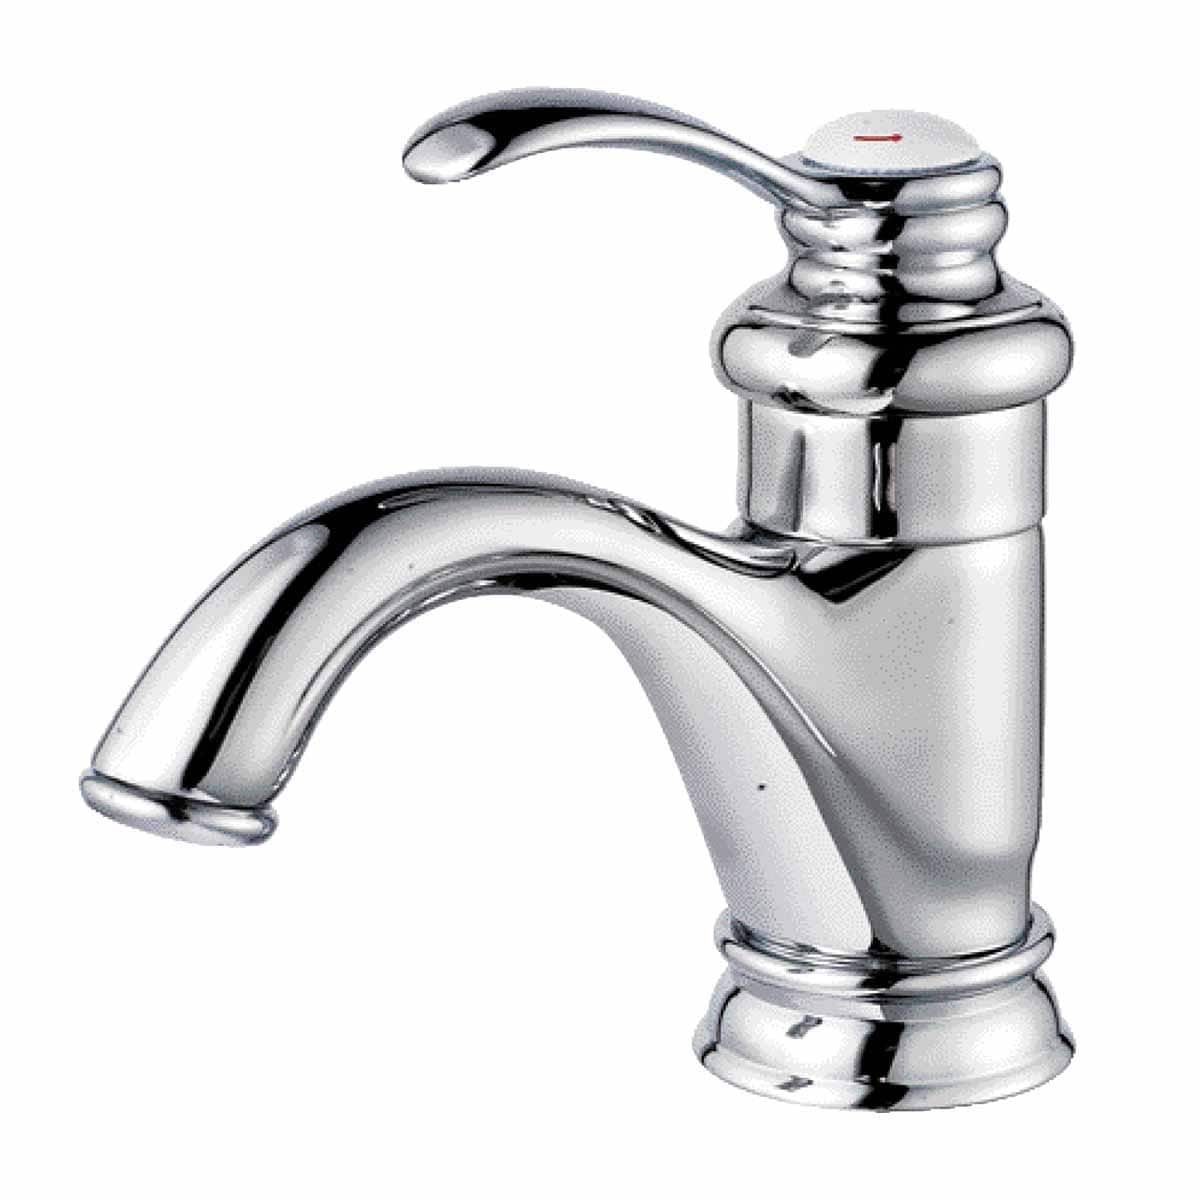 Overstock Com Online Shopping Bedding Furniture Electronics Jewelry Clothing More Bathroom Faucets Chrome Brass Bathroom Faucets Bathroom Faucets [ 1200 x 1200 Pixel ]